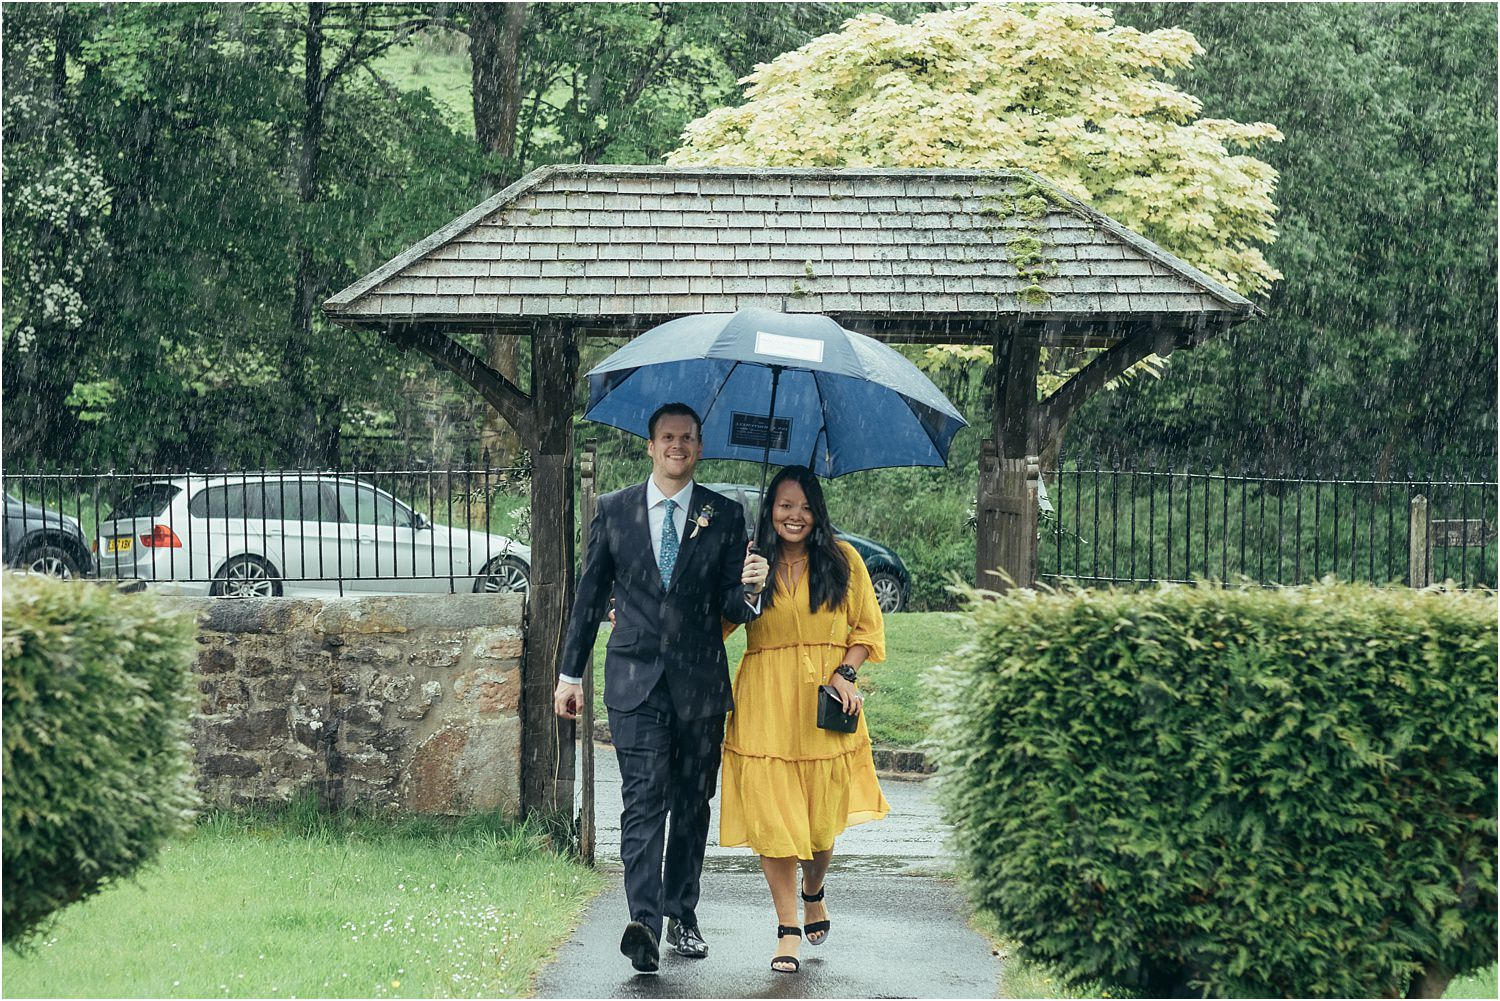 Guests arriving in the rain for Lancashire wedding